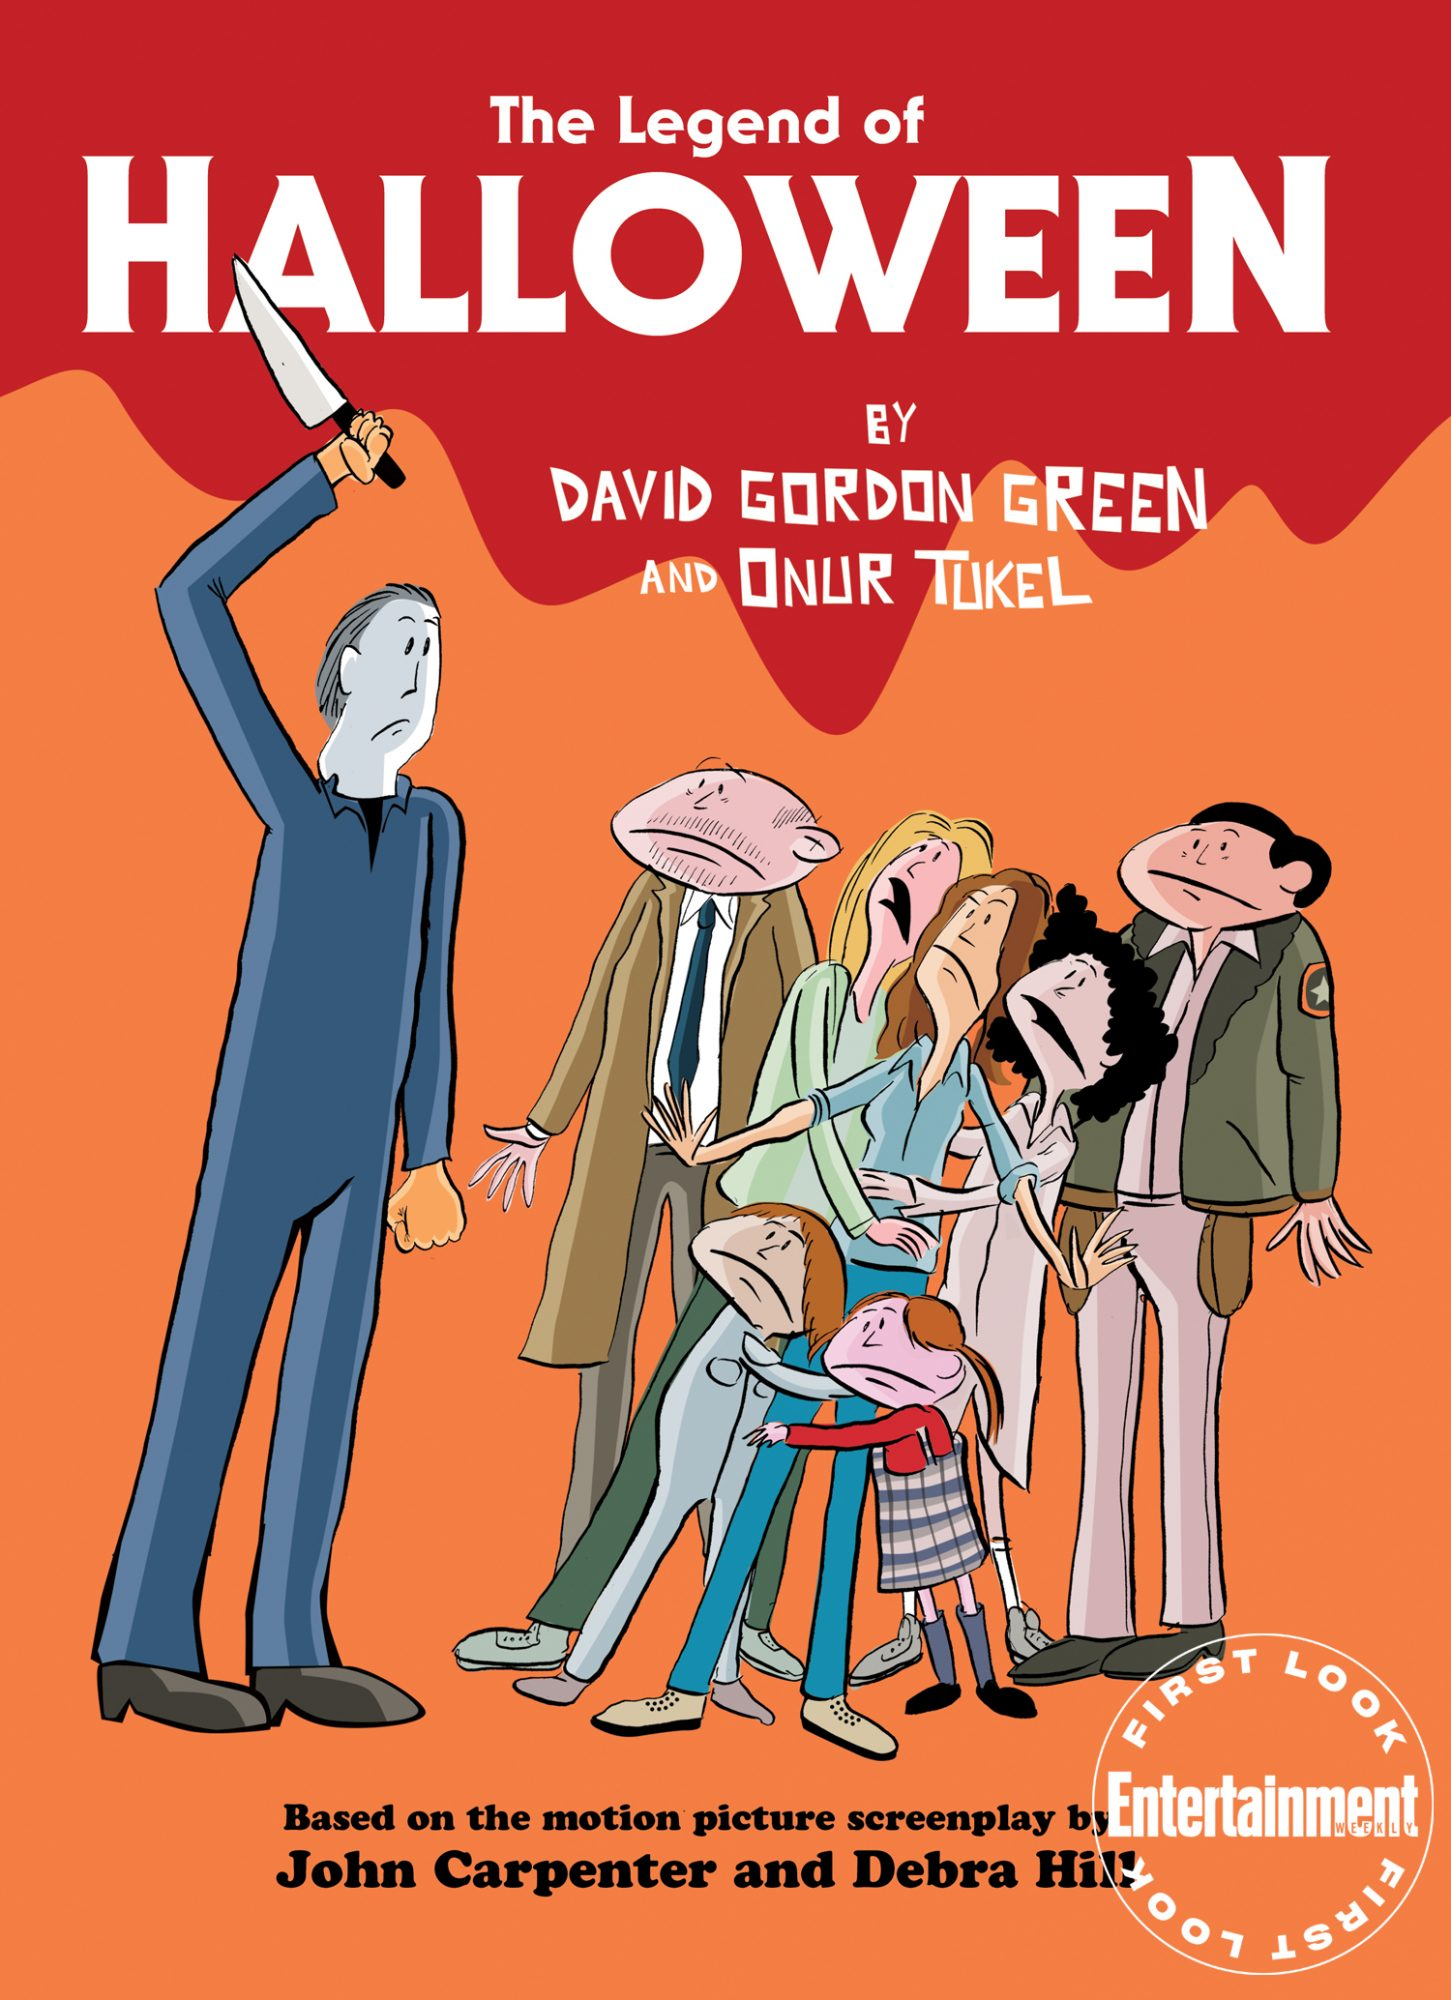 David Gordon Green's illustrated adaptation of John Carpenter's 'Halloween